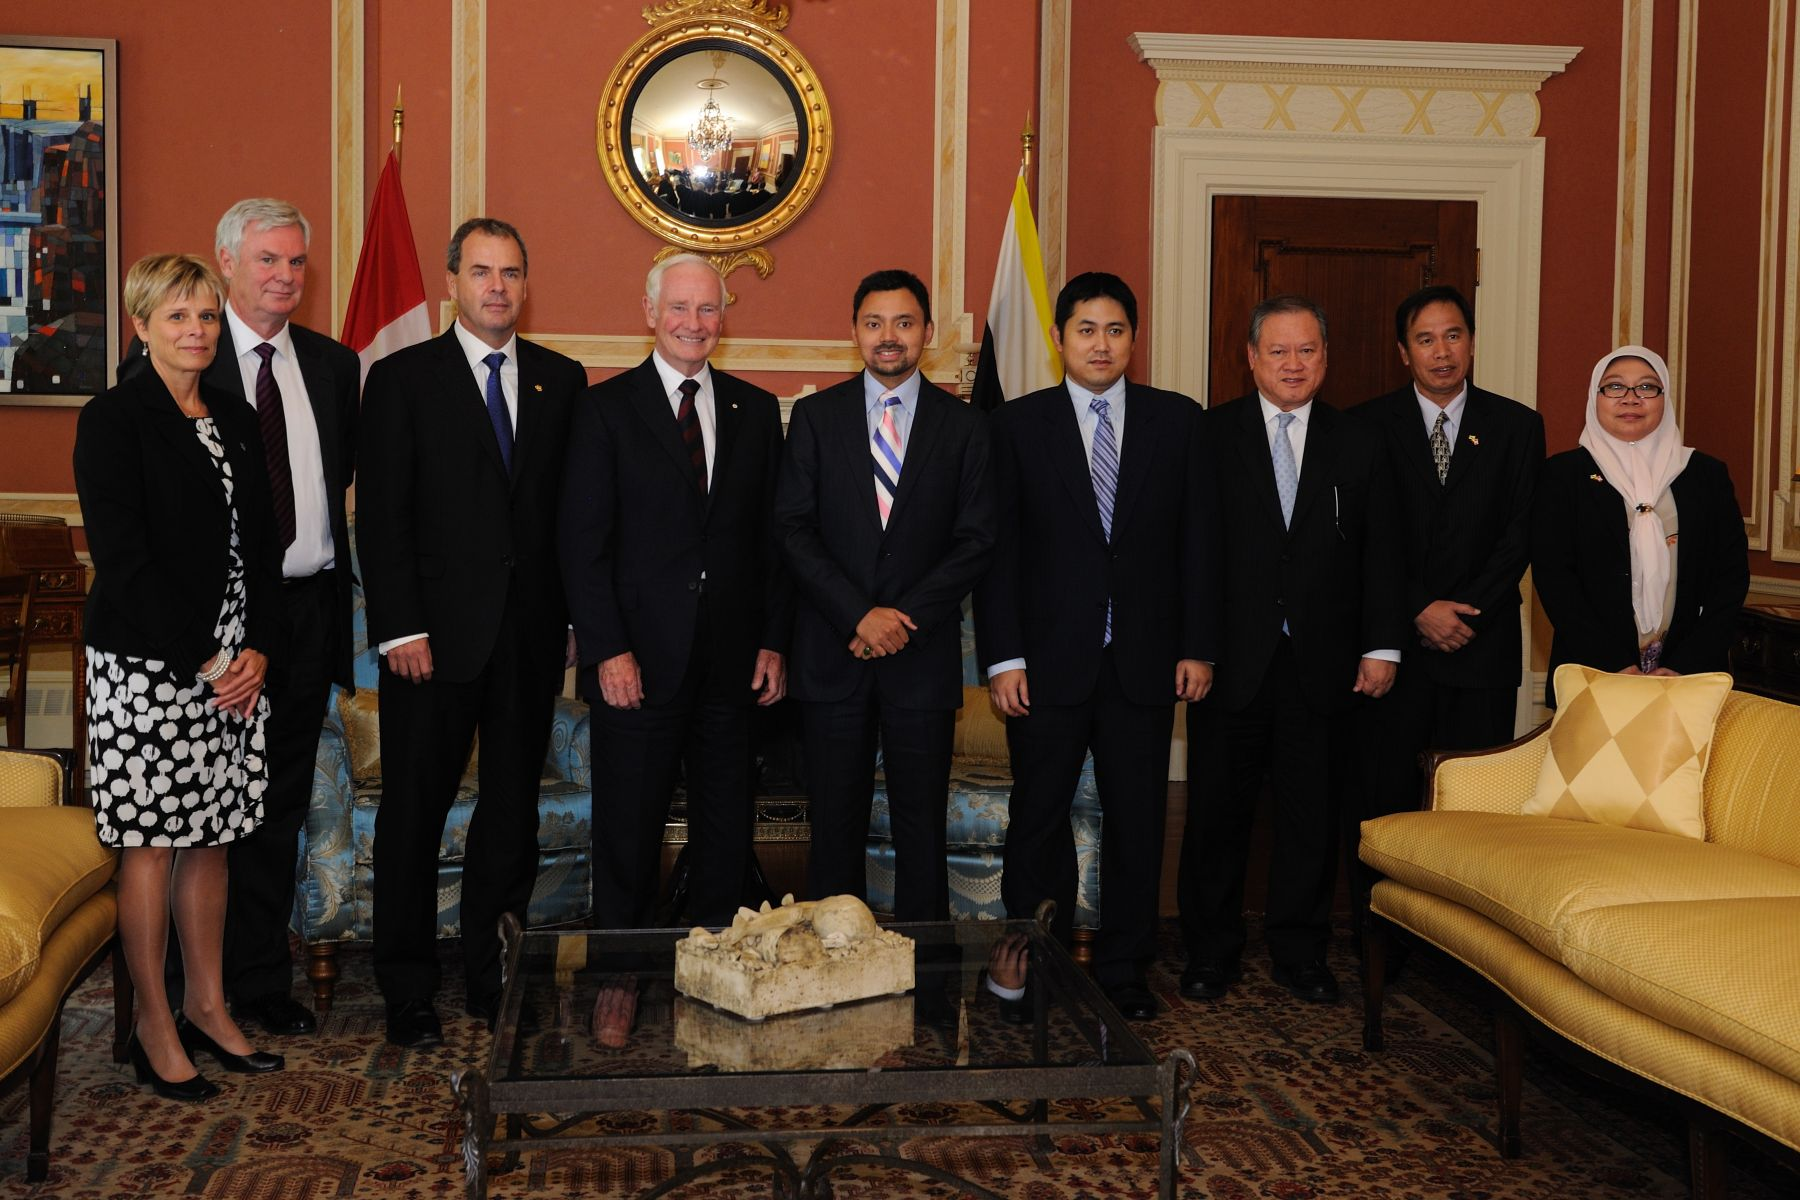 The courtesy call by His Royal Highness took place in the Large Drawing Room at Rideau Hall. Deputy Secretary of the Policy, Program and Protocol Branch at the Office of the Secretary to the Governor General Mrs. Patricia Jaton (left), Secretary to the Governor General Mr. Stephen Wallace (left to His Excellency), and members of His Royal Highness' official delegation also attended the meeting.